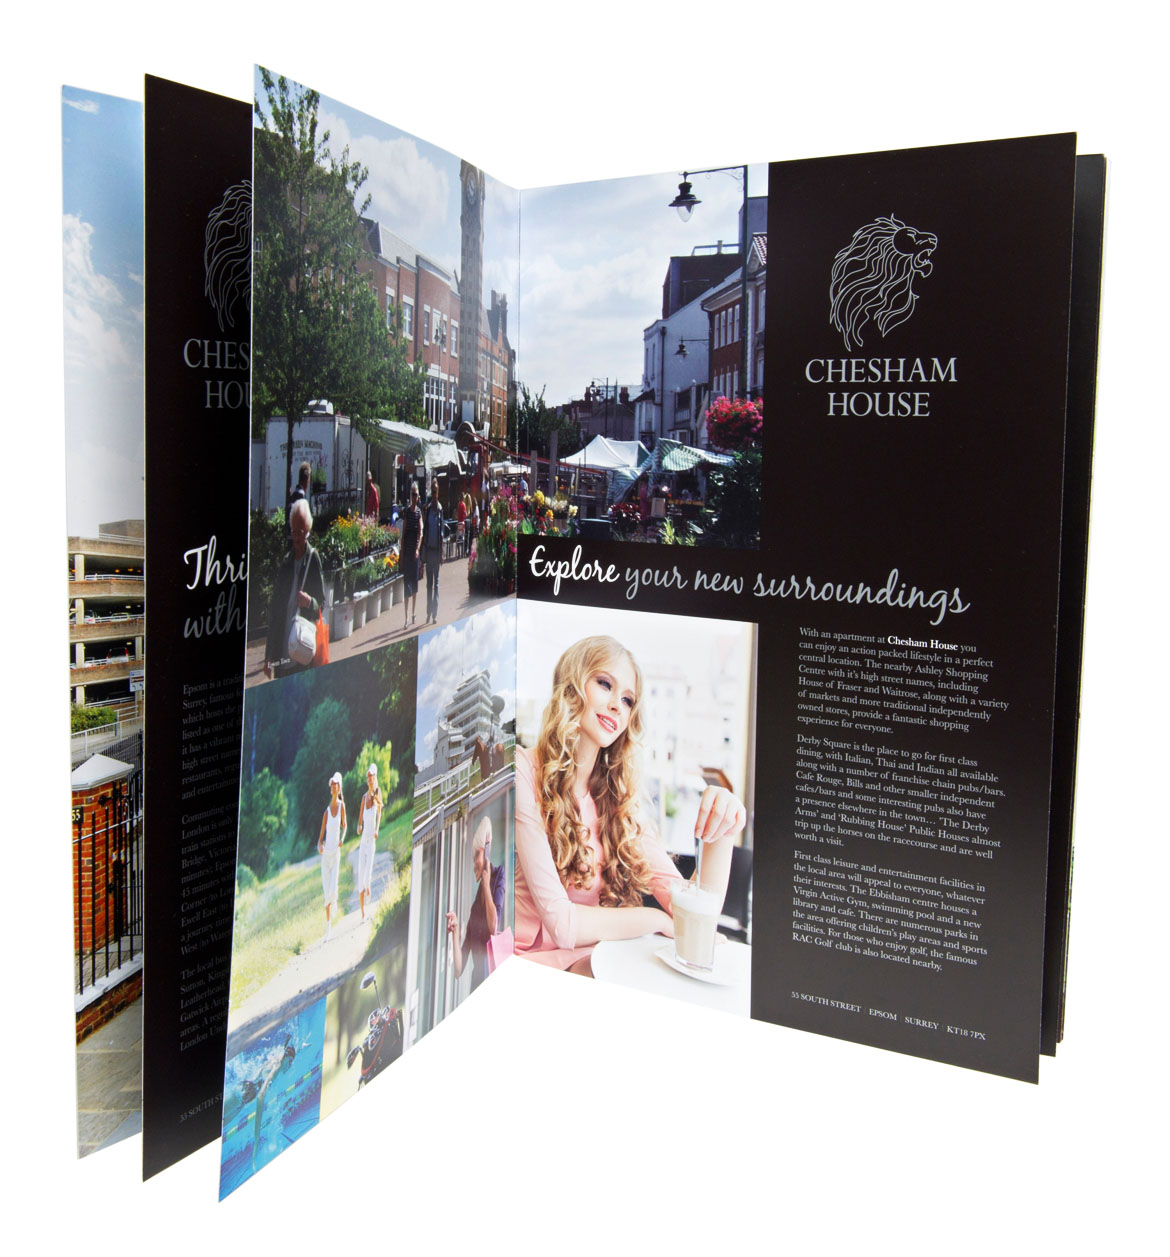 apartment brochure design. Property Branding And Brochure Design For Contemporary Apartments In Woking Apartment